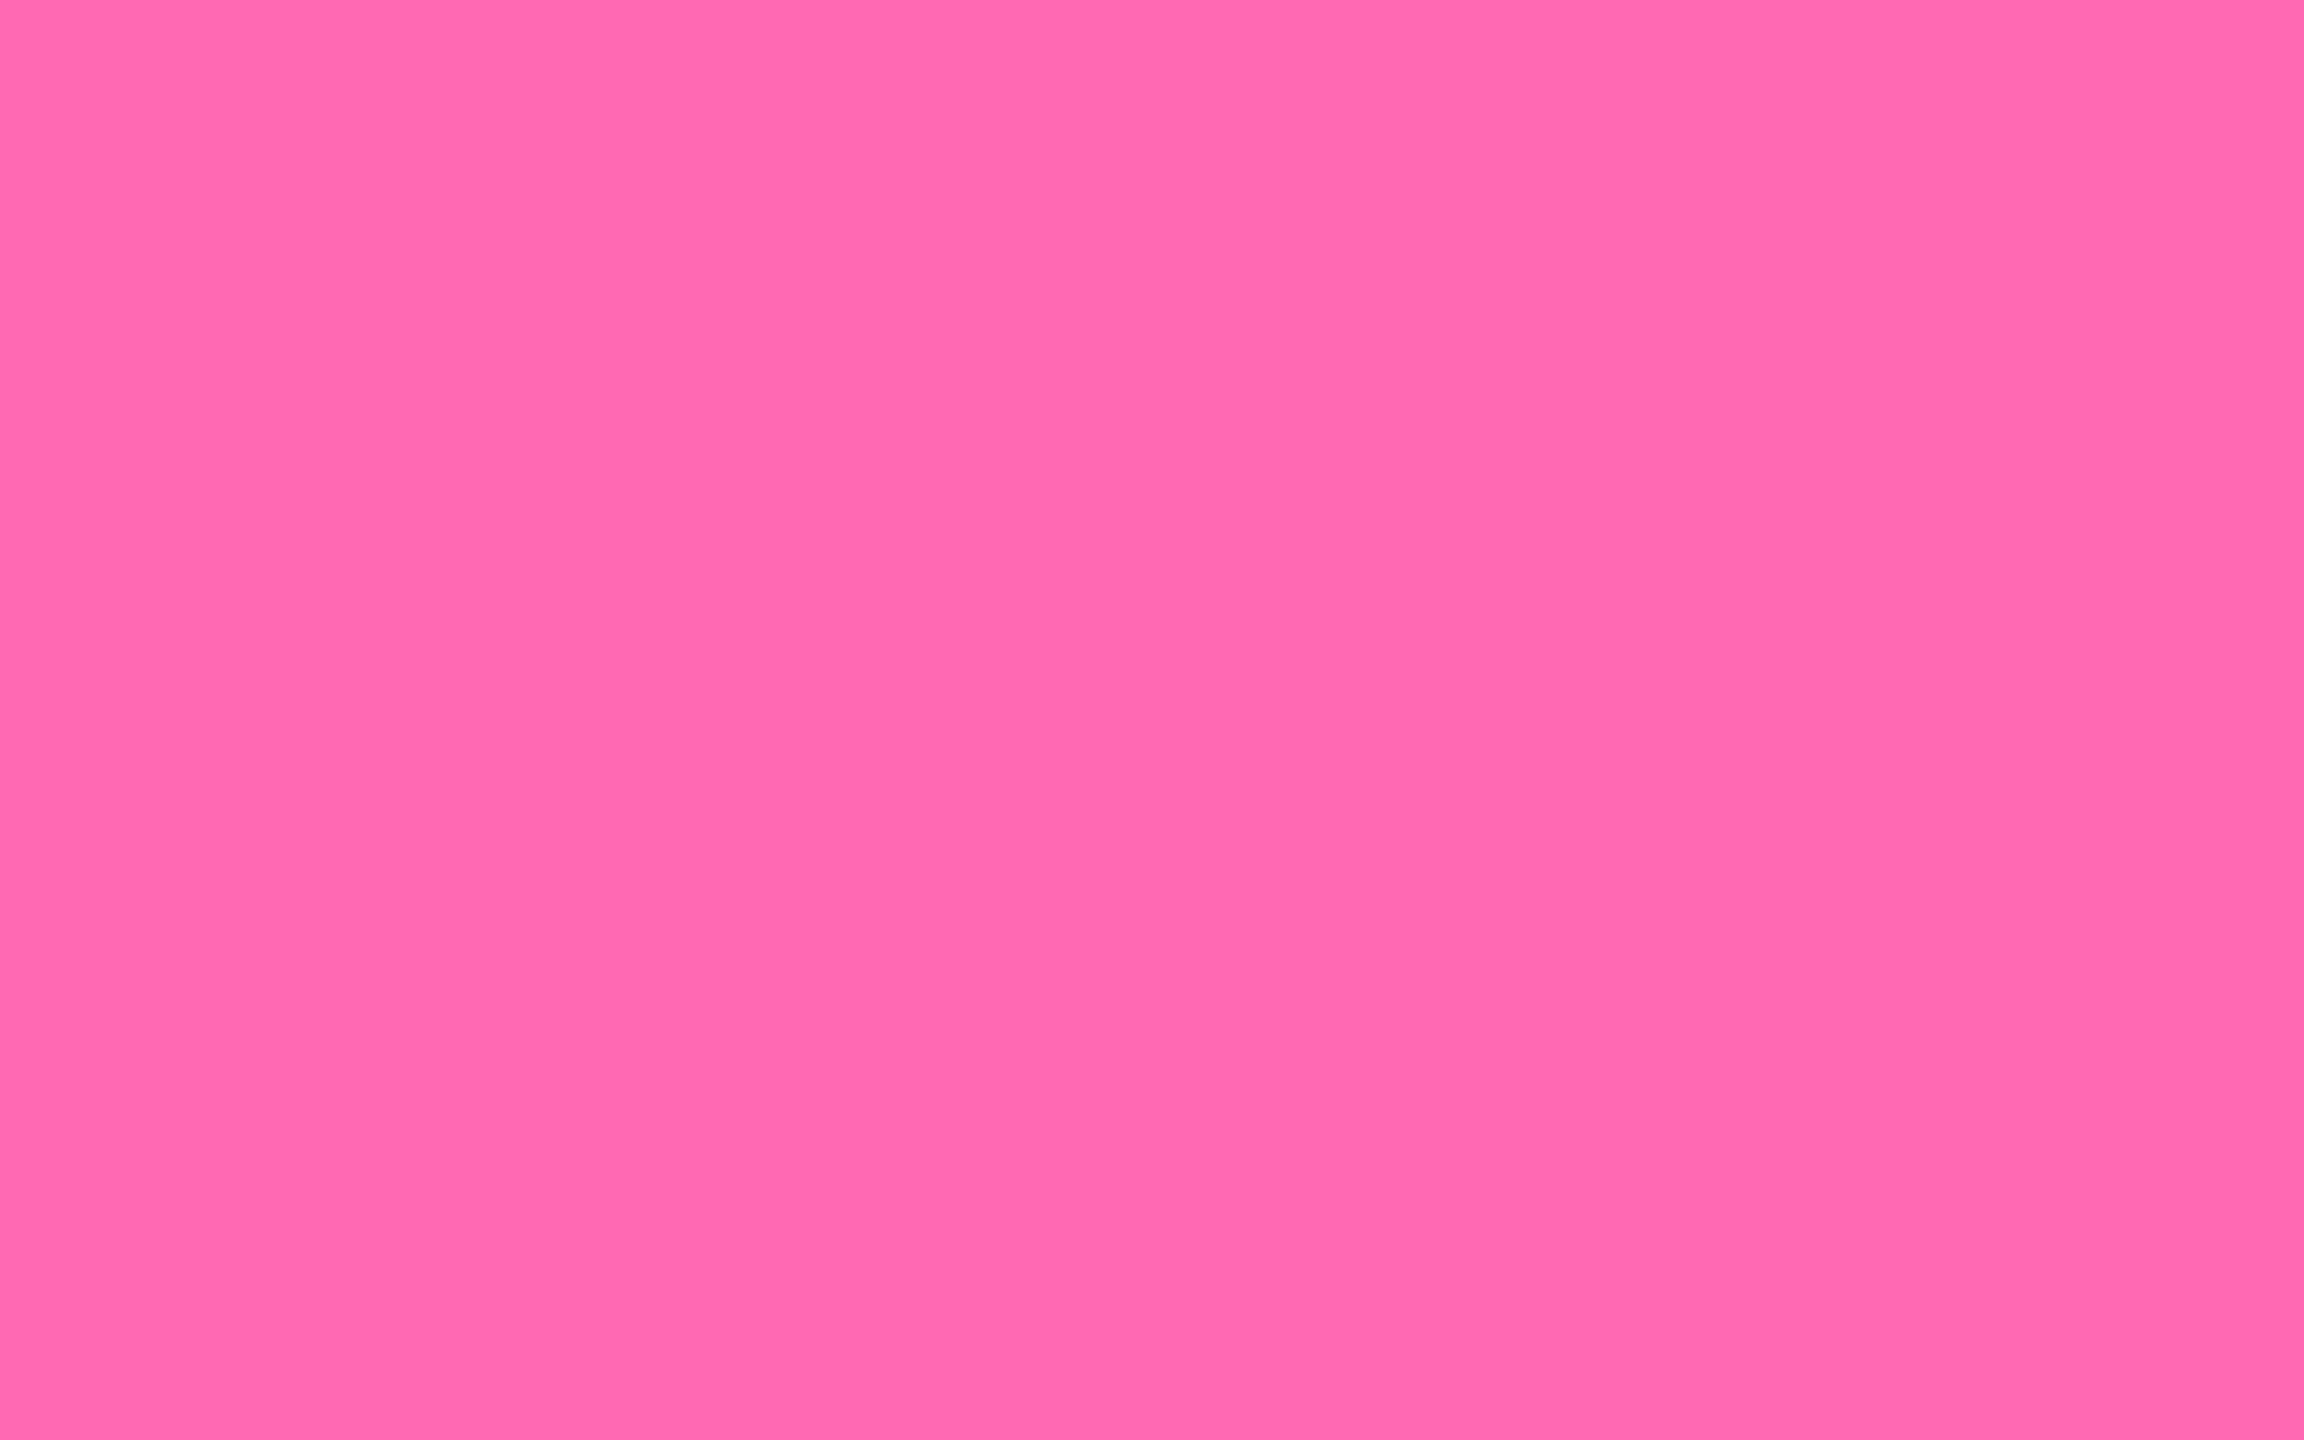 2304x1440 Hot Pink Solid Color Background